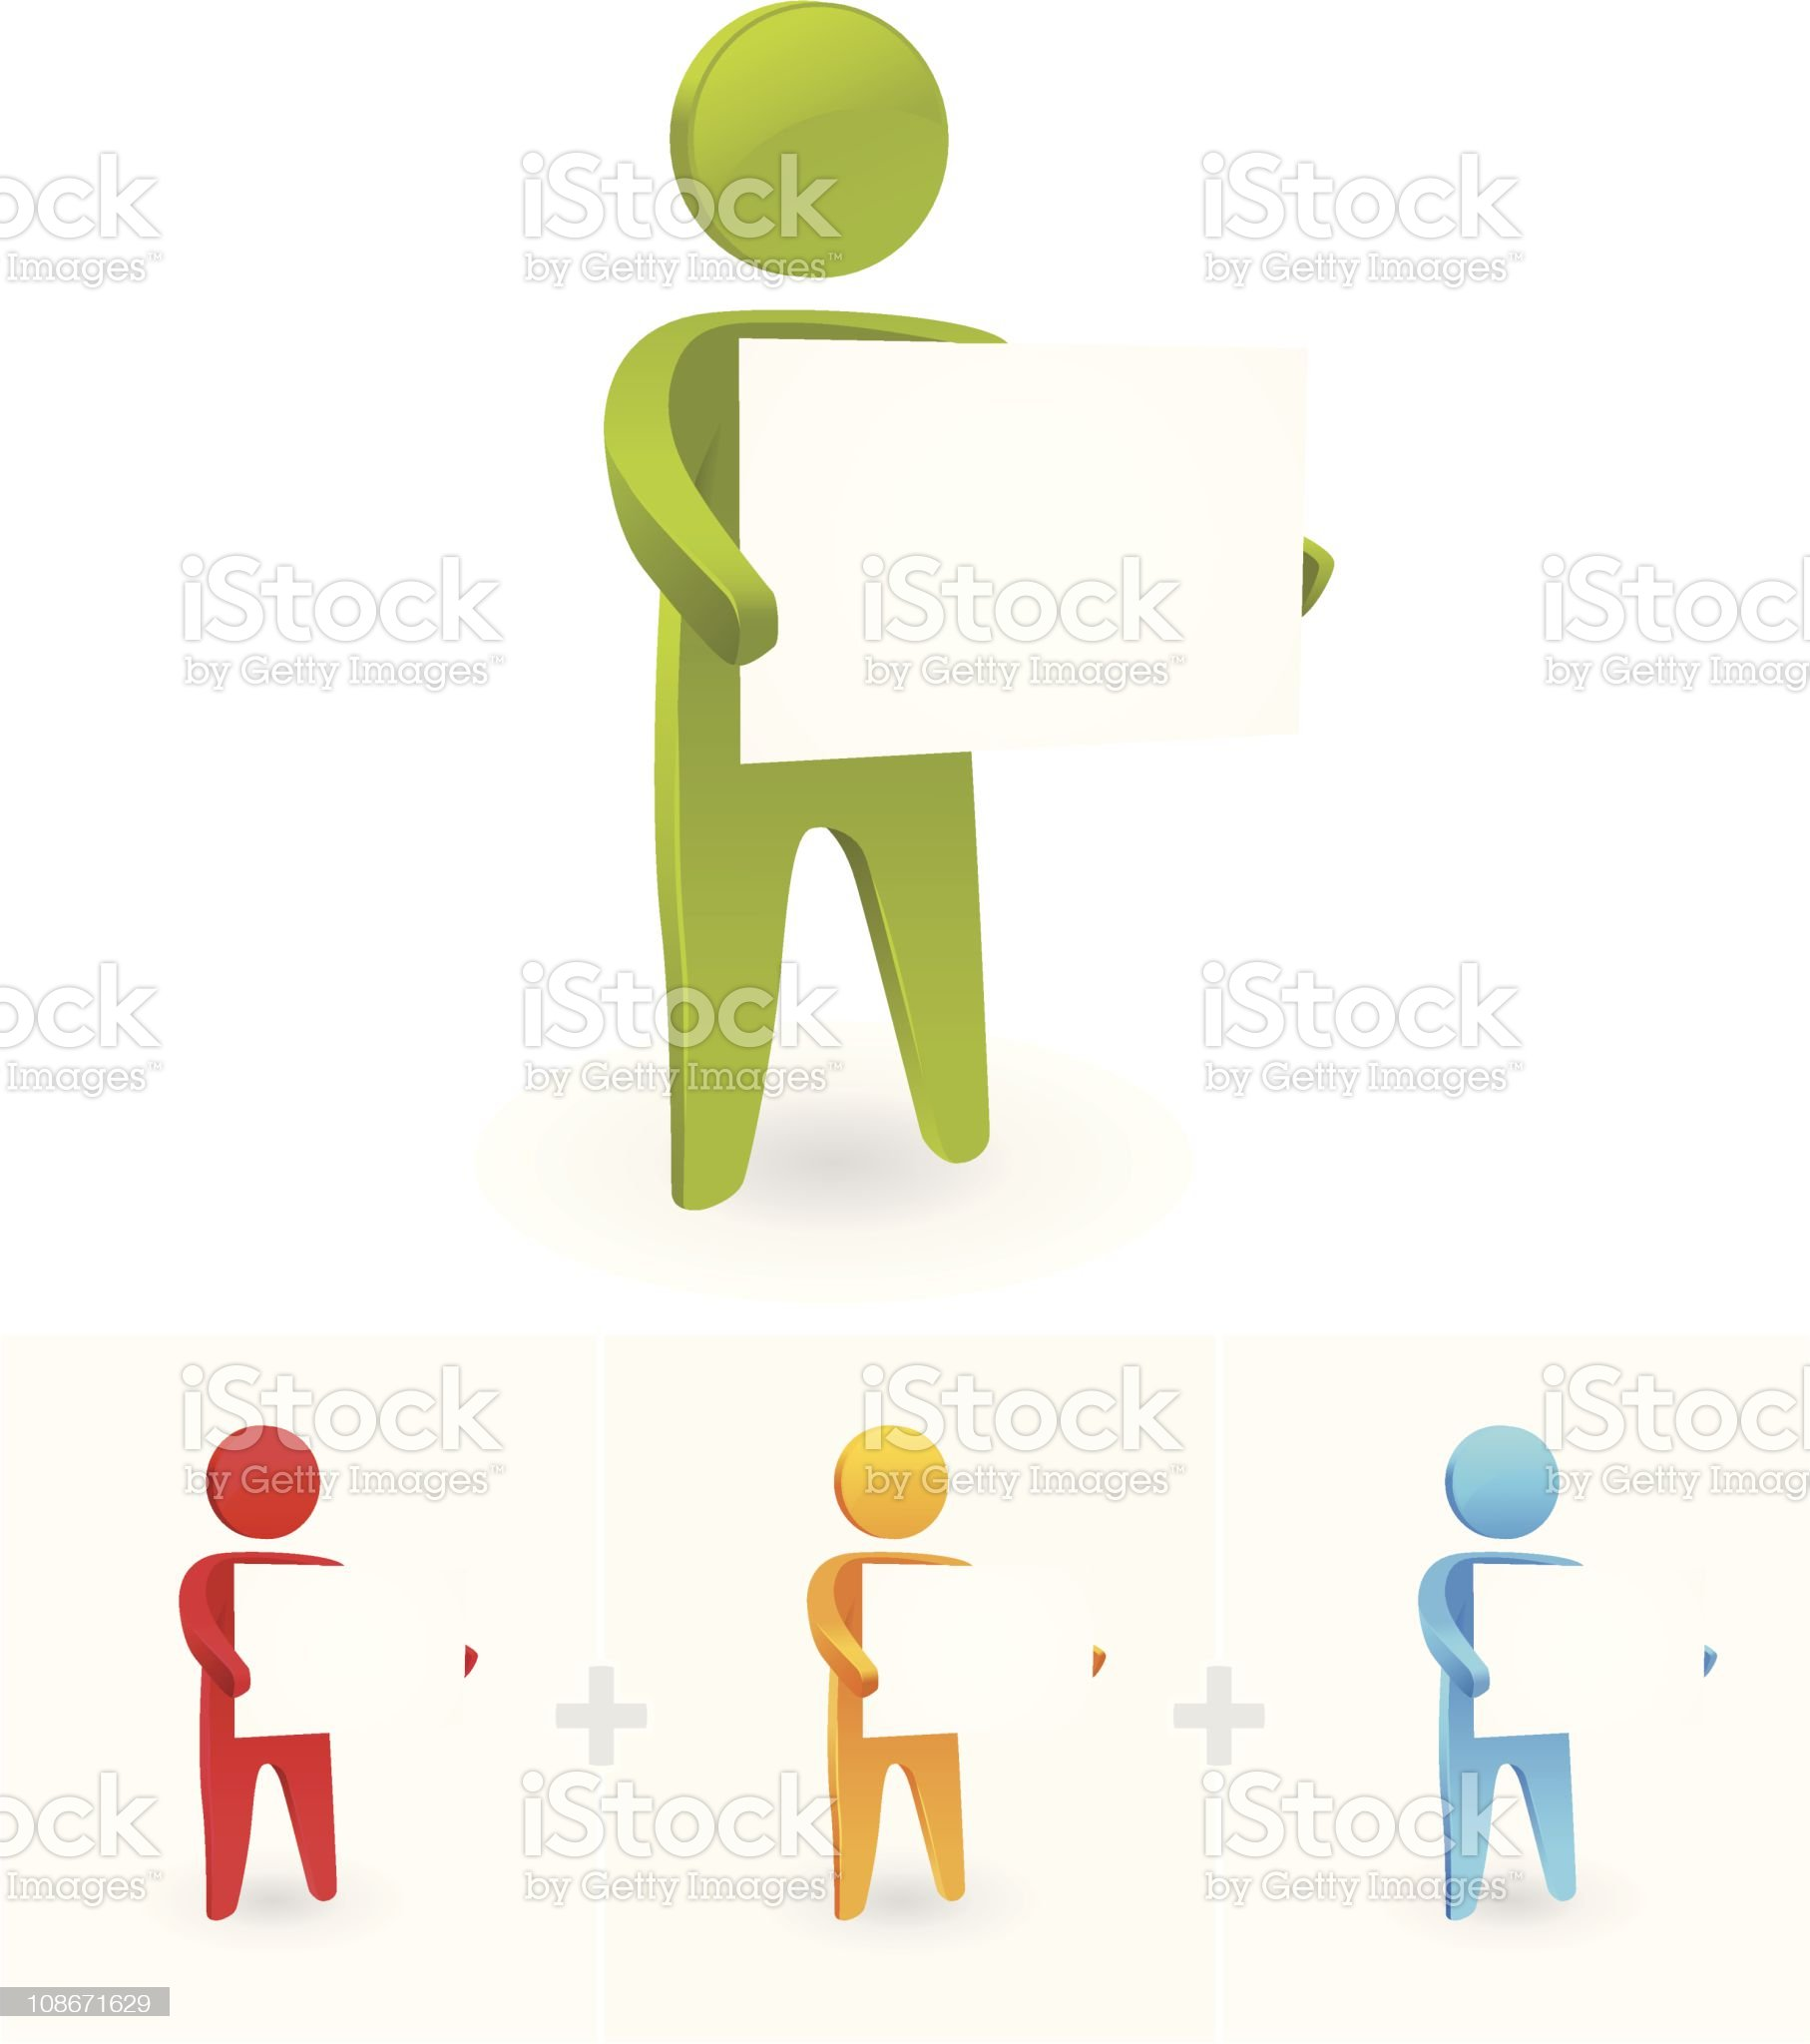 Illustration of four stick figures holding blank signs royalty-free stock vector art